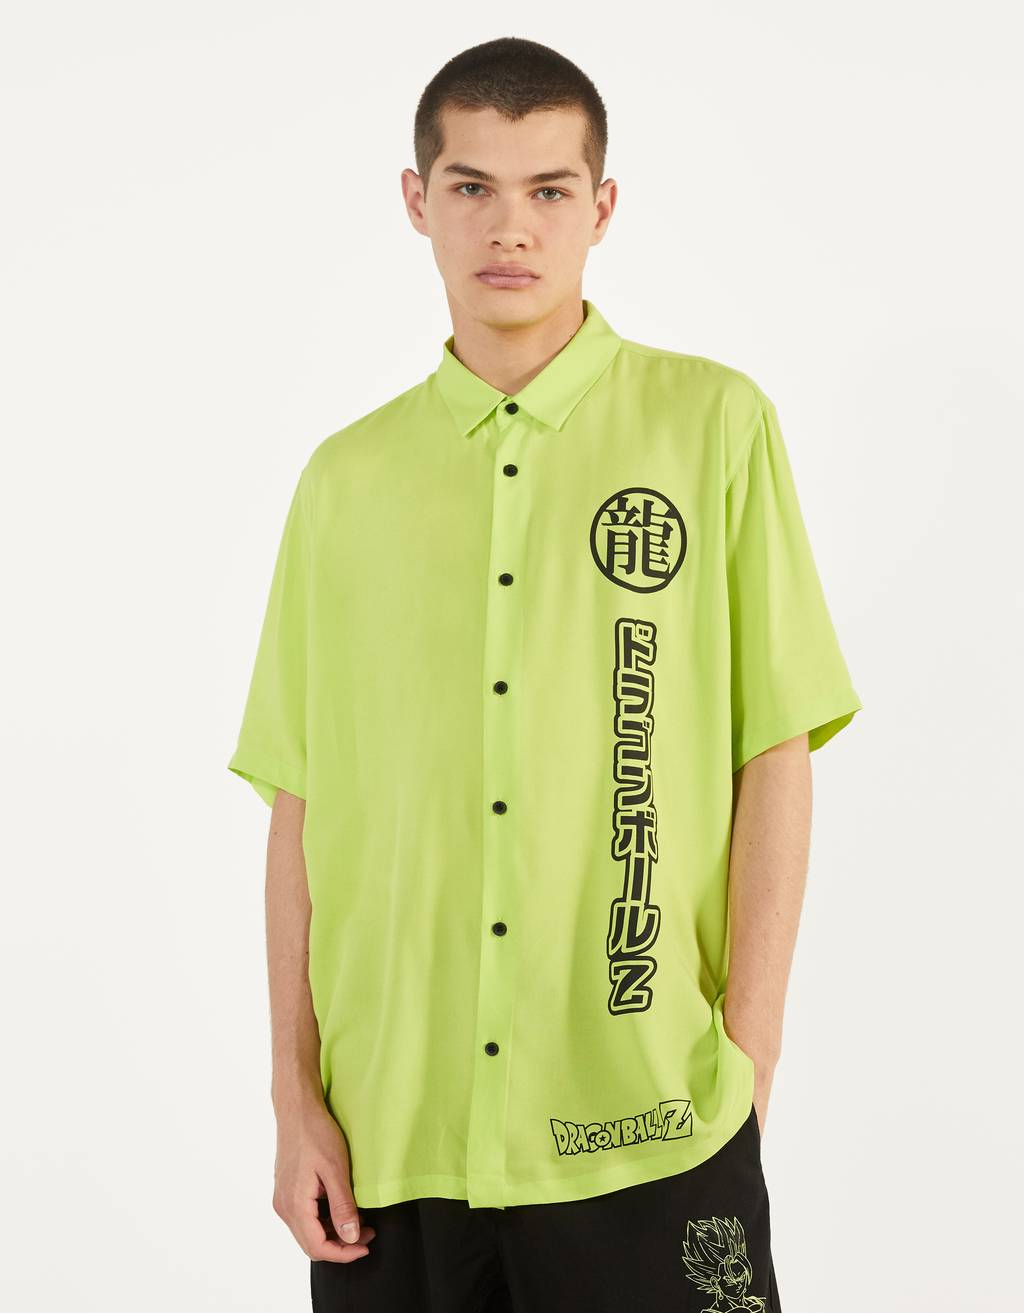 Dragon Ball Z x Bershka shirt